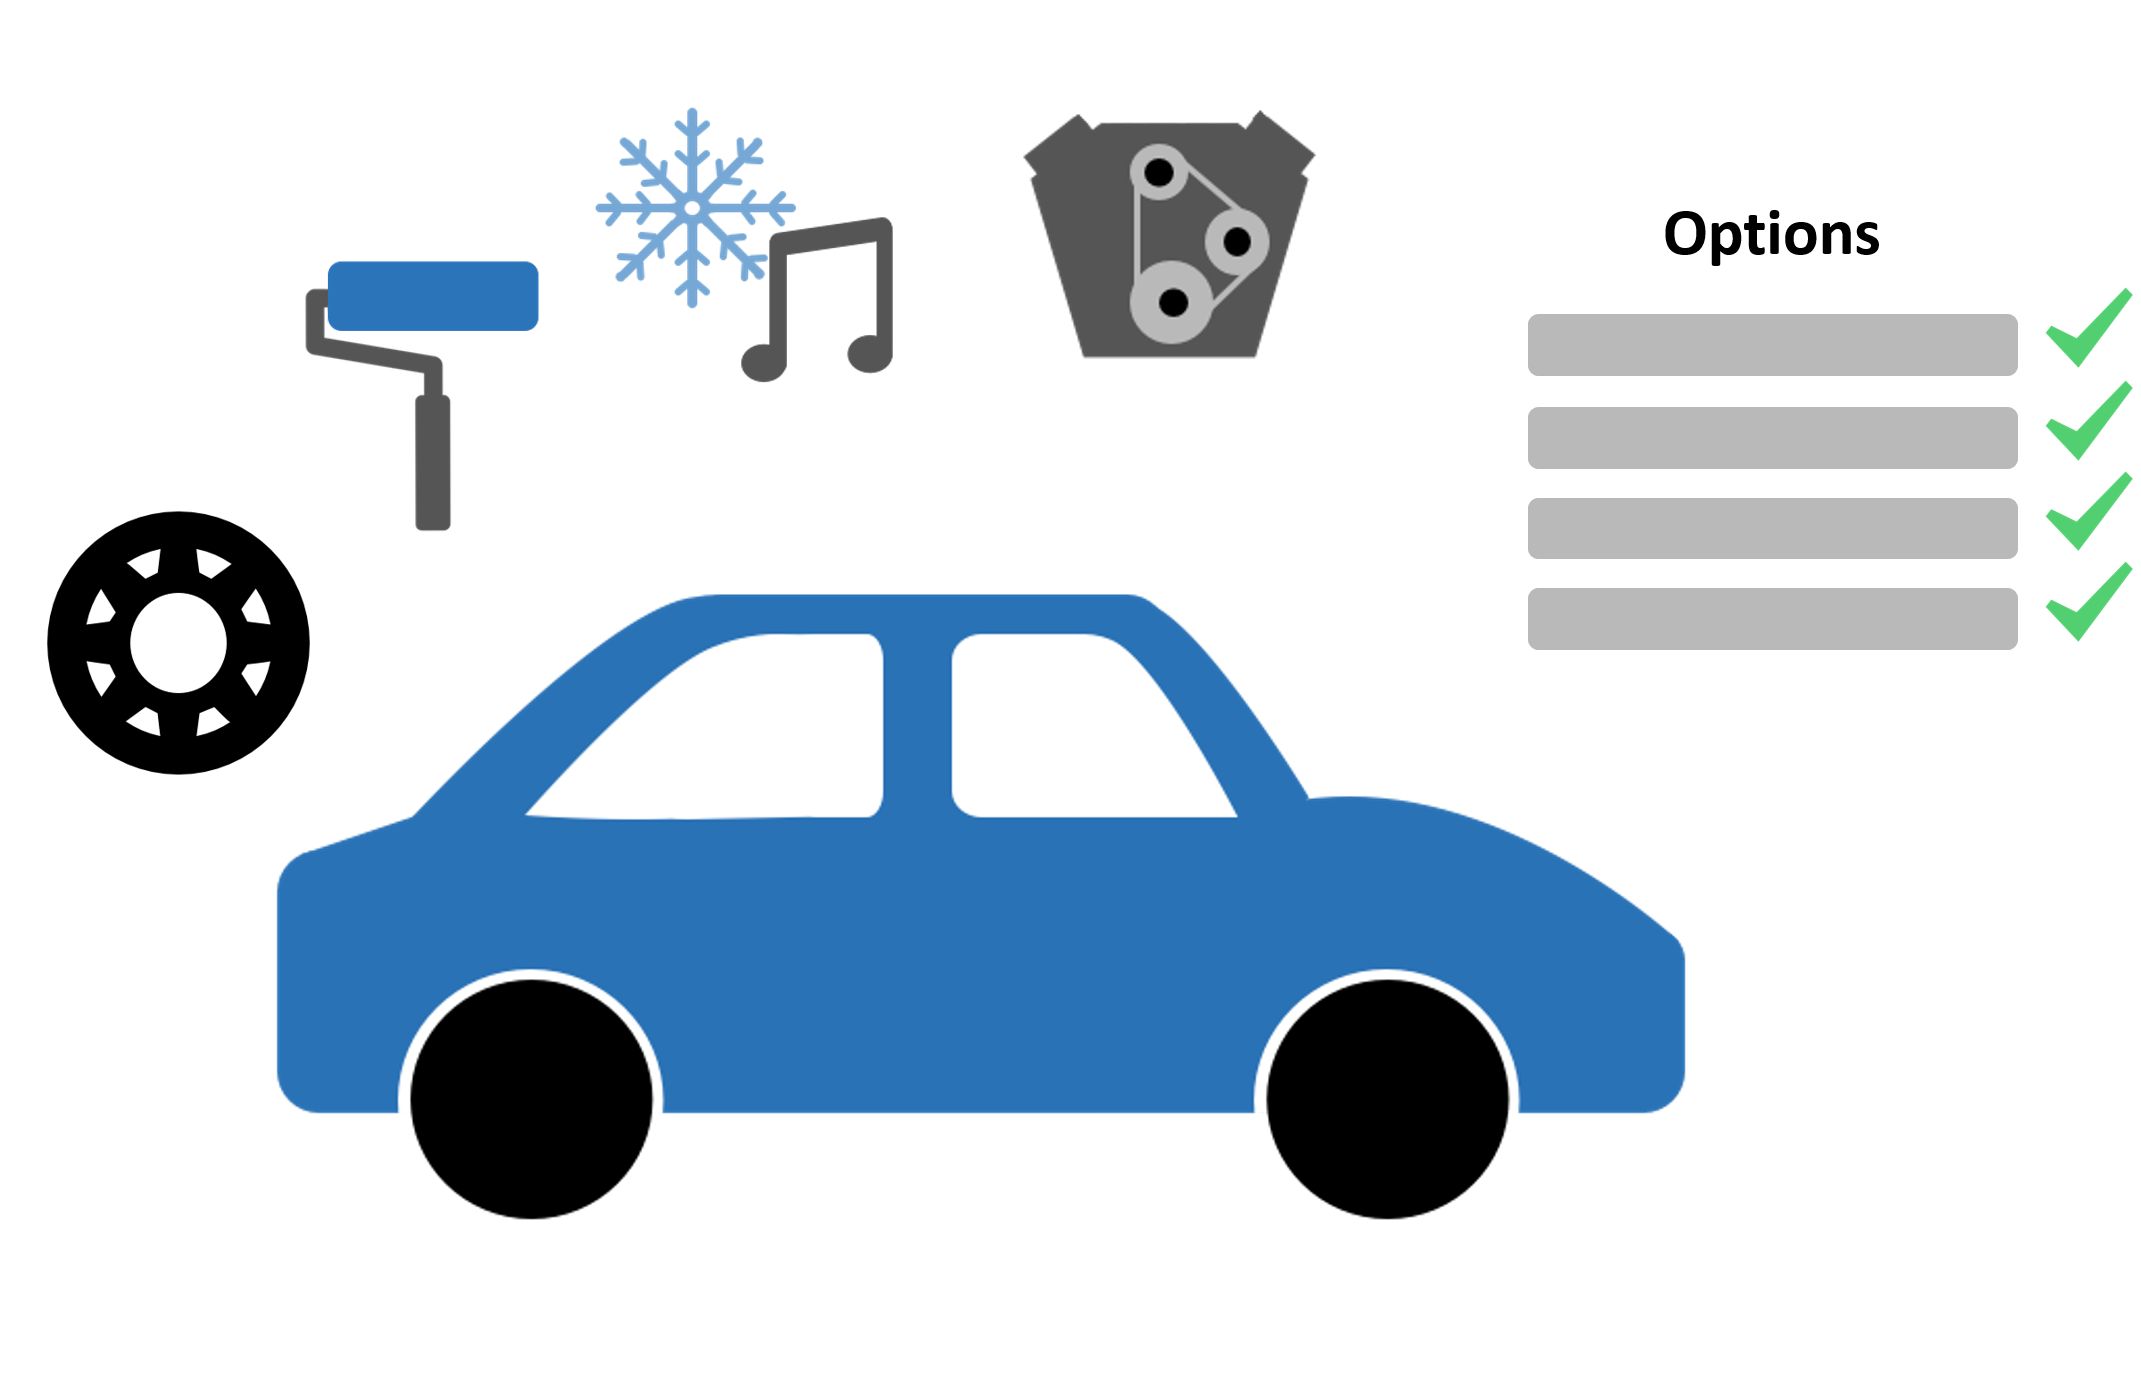 Engine clipart automotive technology. The user dashboard is